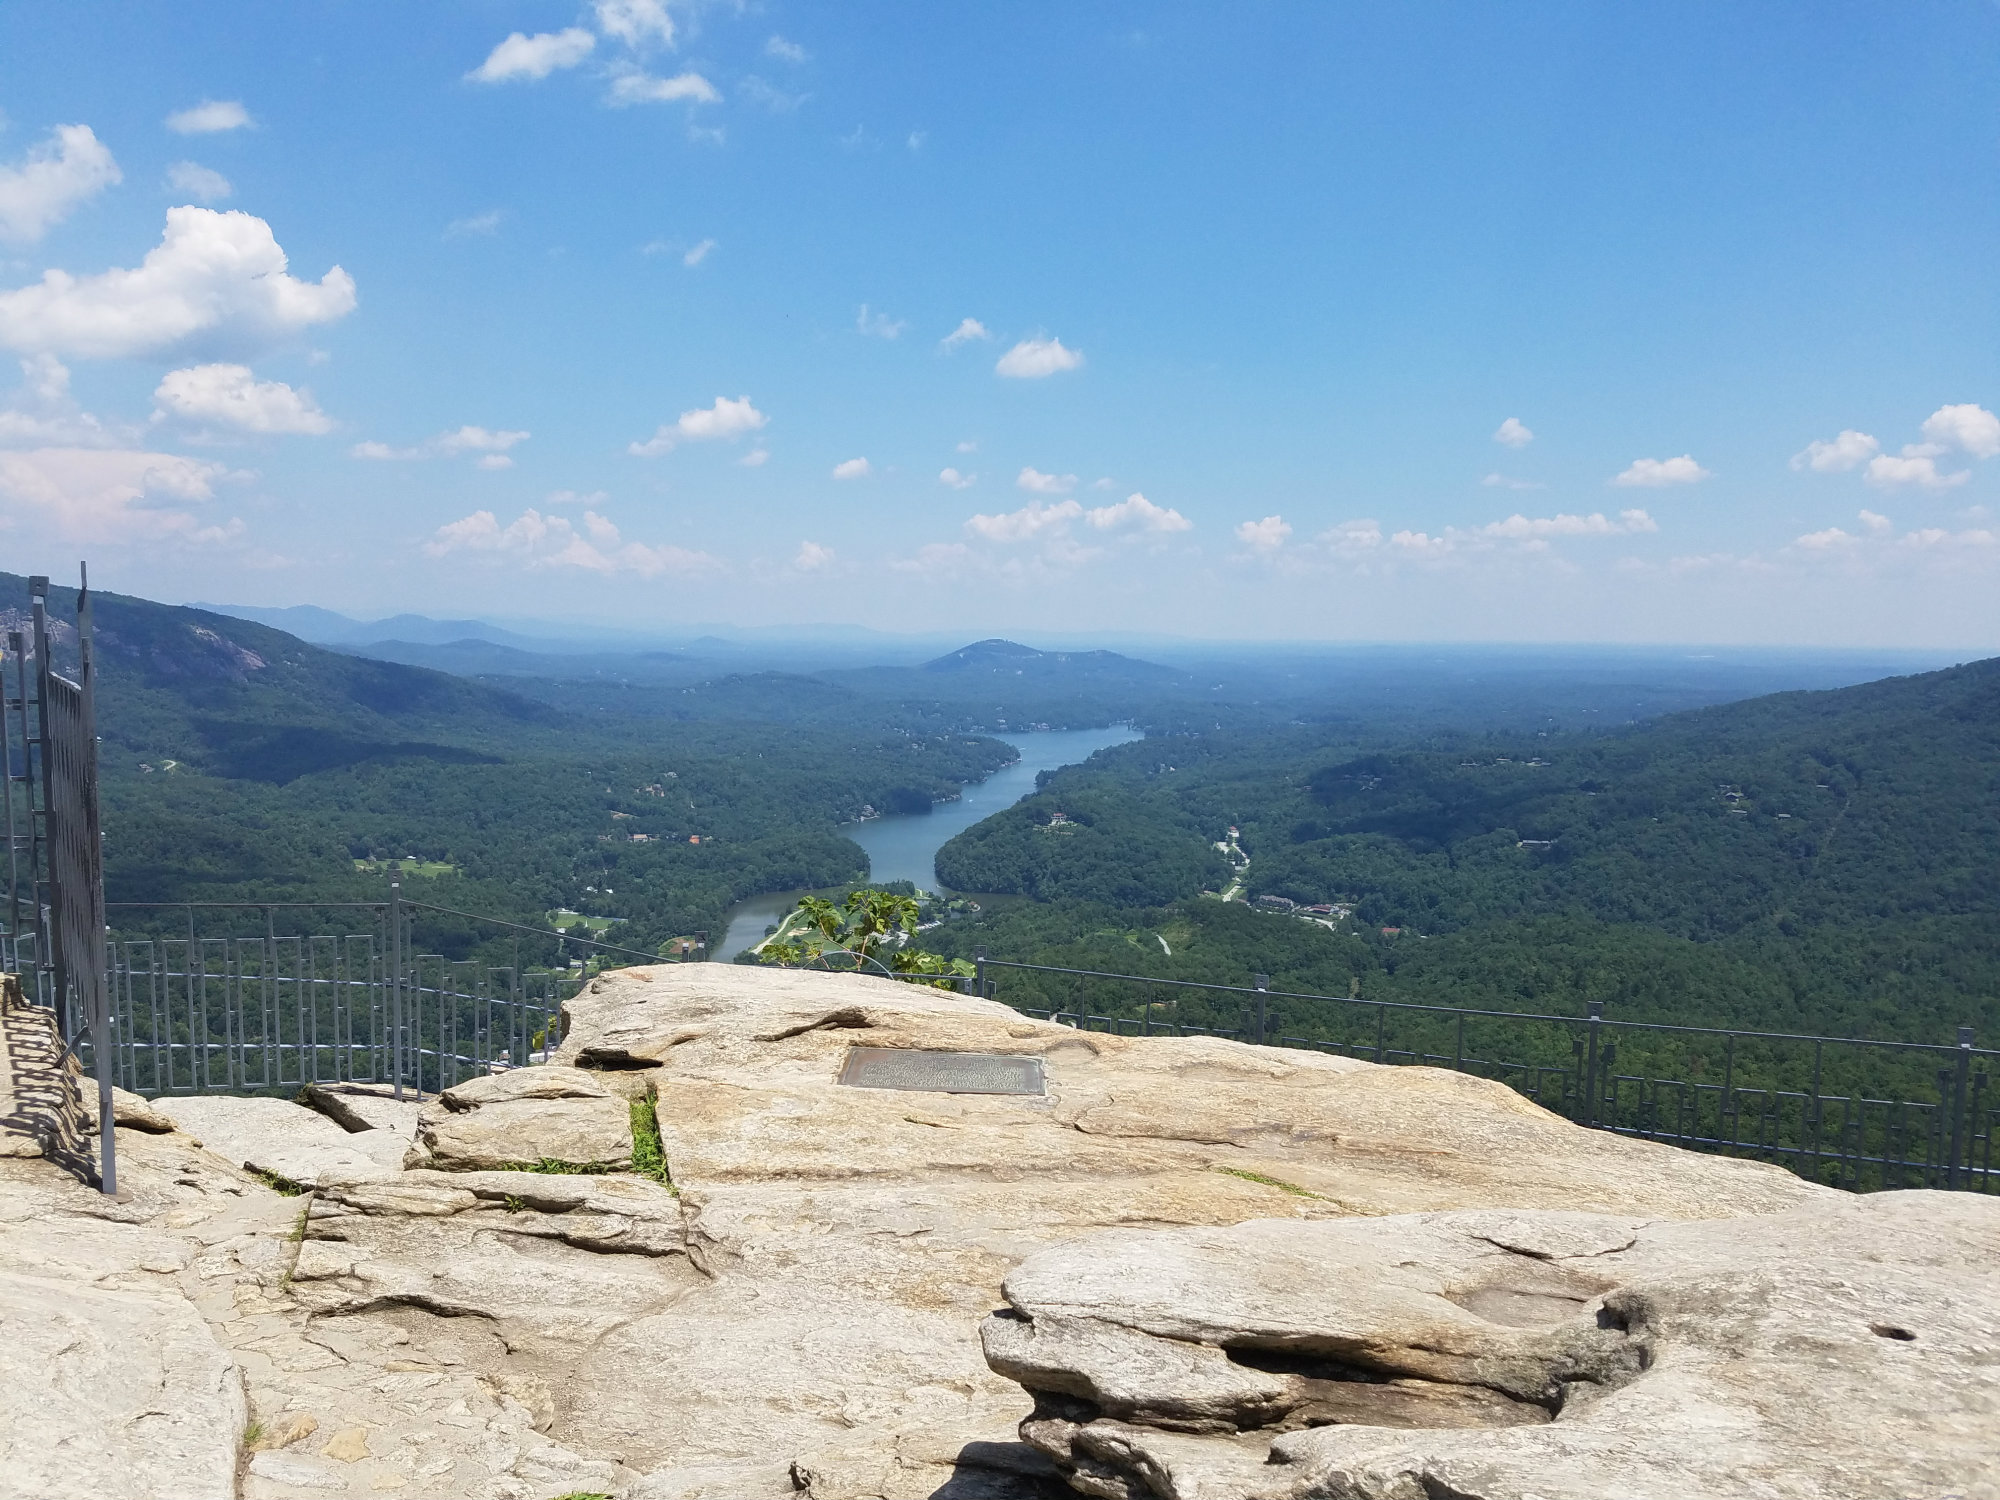 View of expansive tree-filled landscape and lake from the top of a large rock